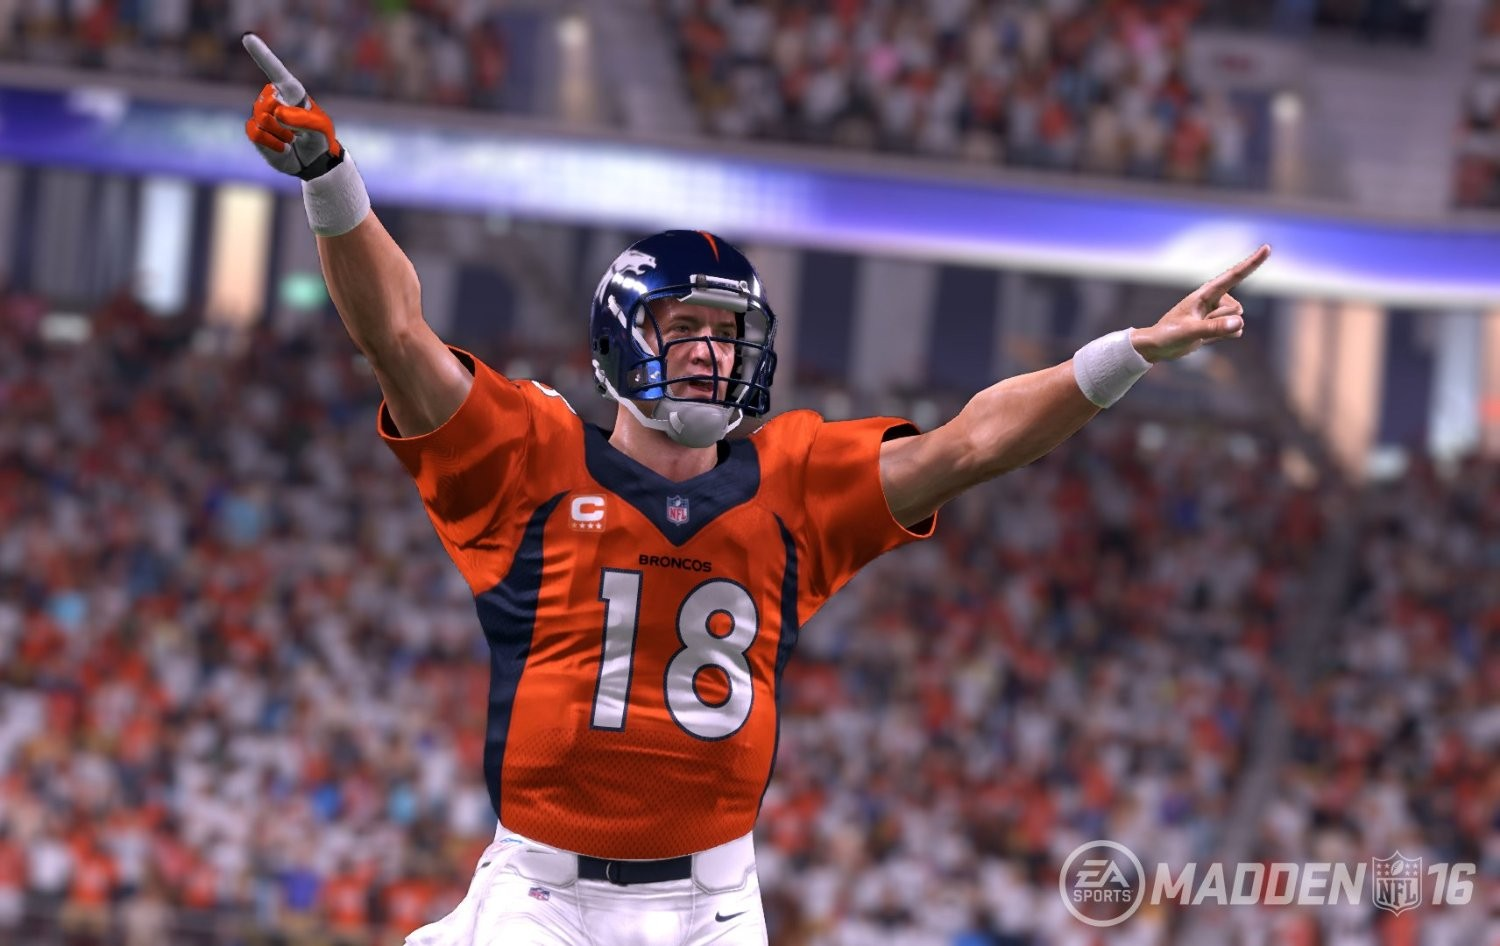 The First Madden Nfl 16 Screenshots Look Awesome Madden School